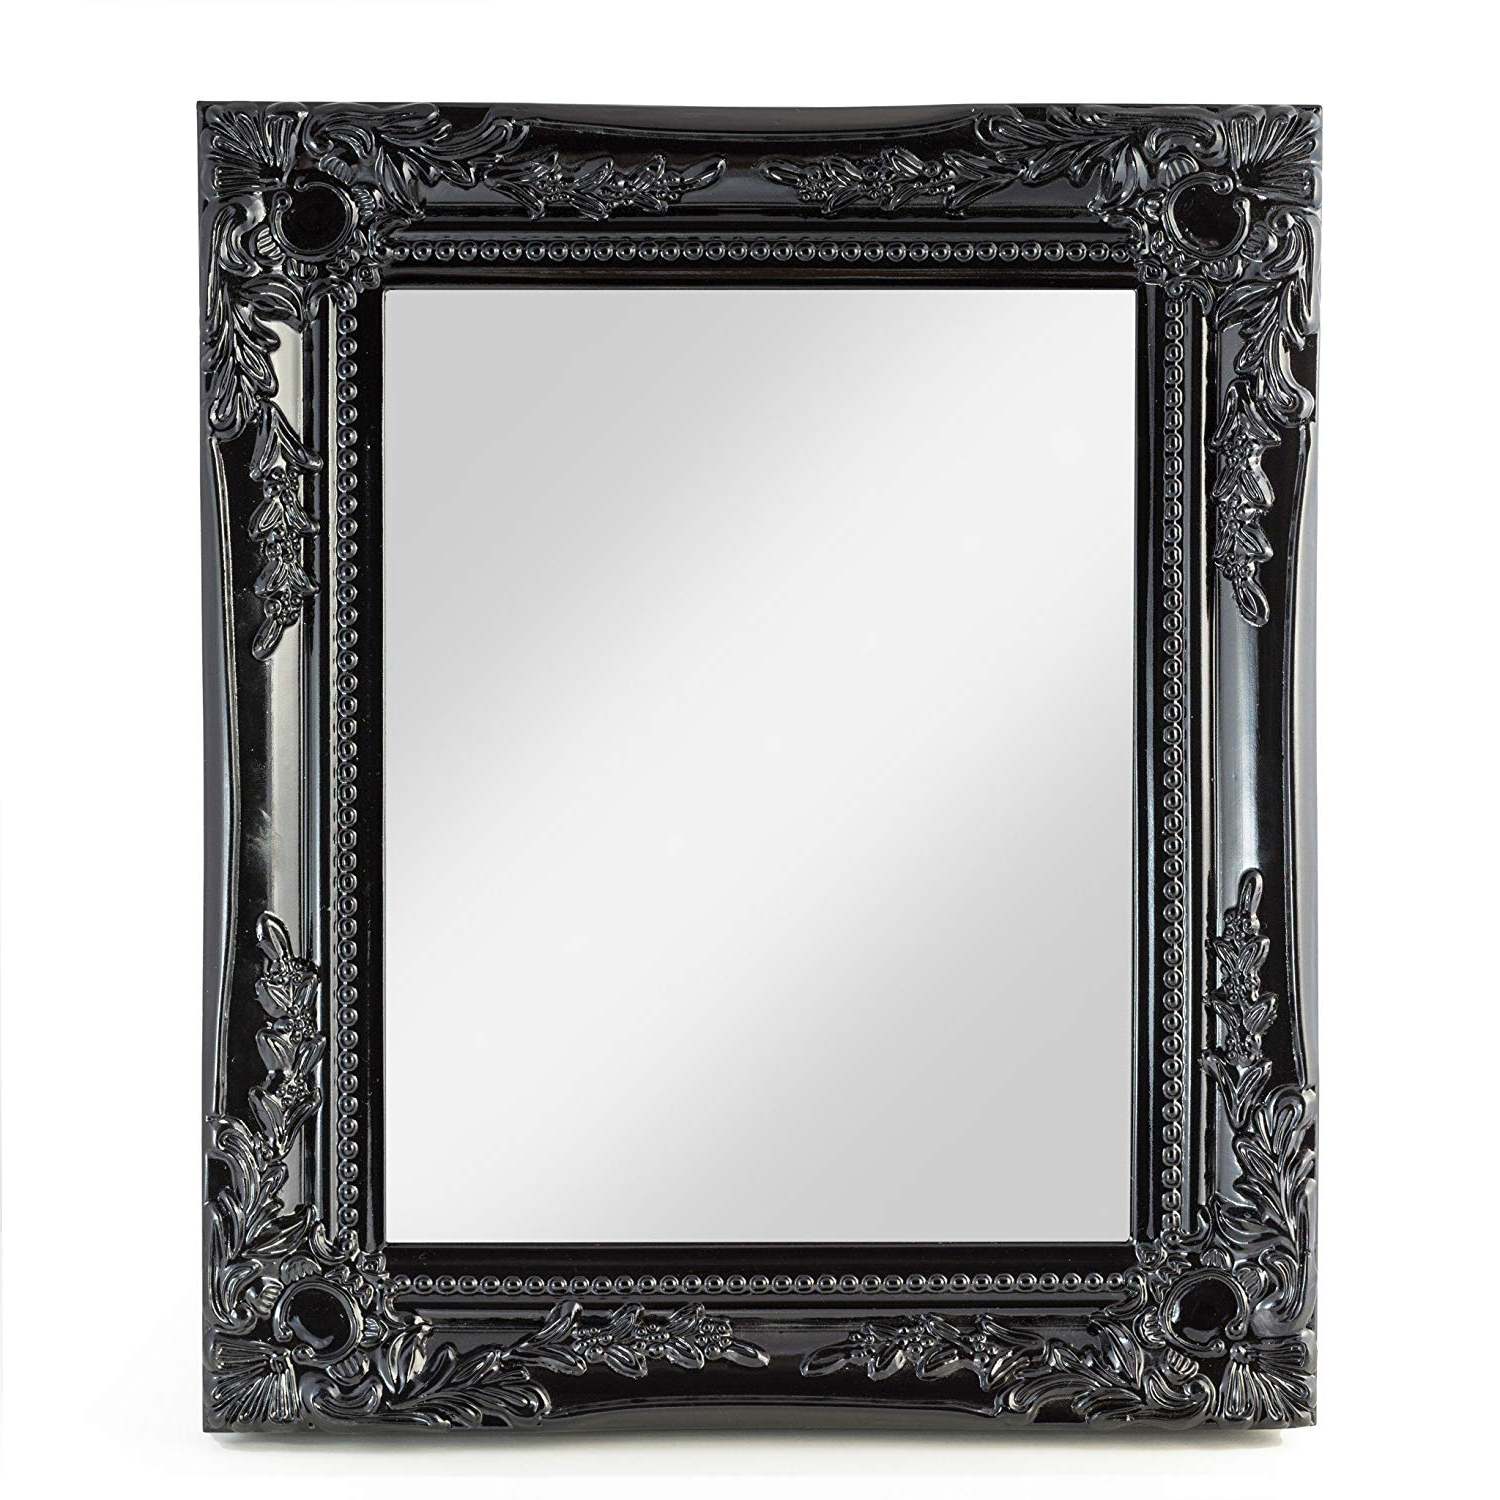 Elbmoebel Wall Mirror Shabby Chic Antique Style Ornate Black Silver White –  Large 33X27X3 Cm (Black) For Most Up To Date White Shabby Chic Wall Mirrors (Gallery 4 of 20)